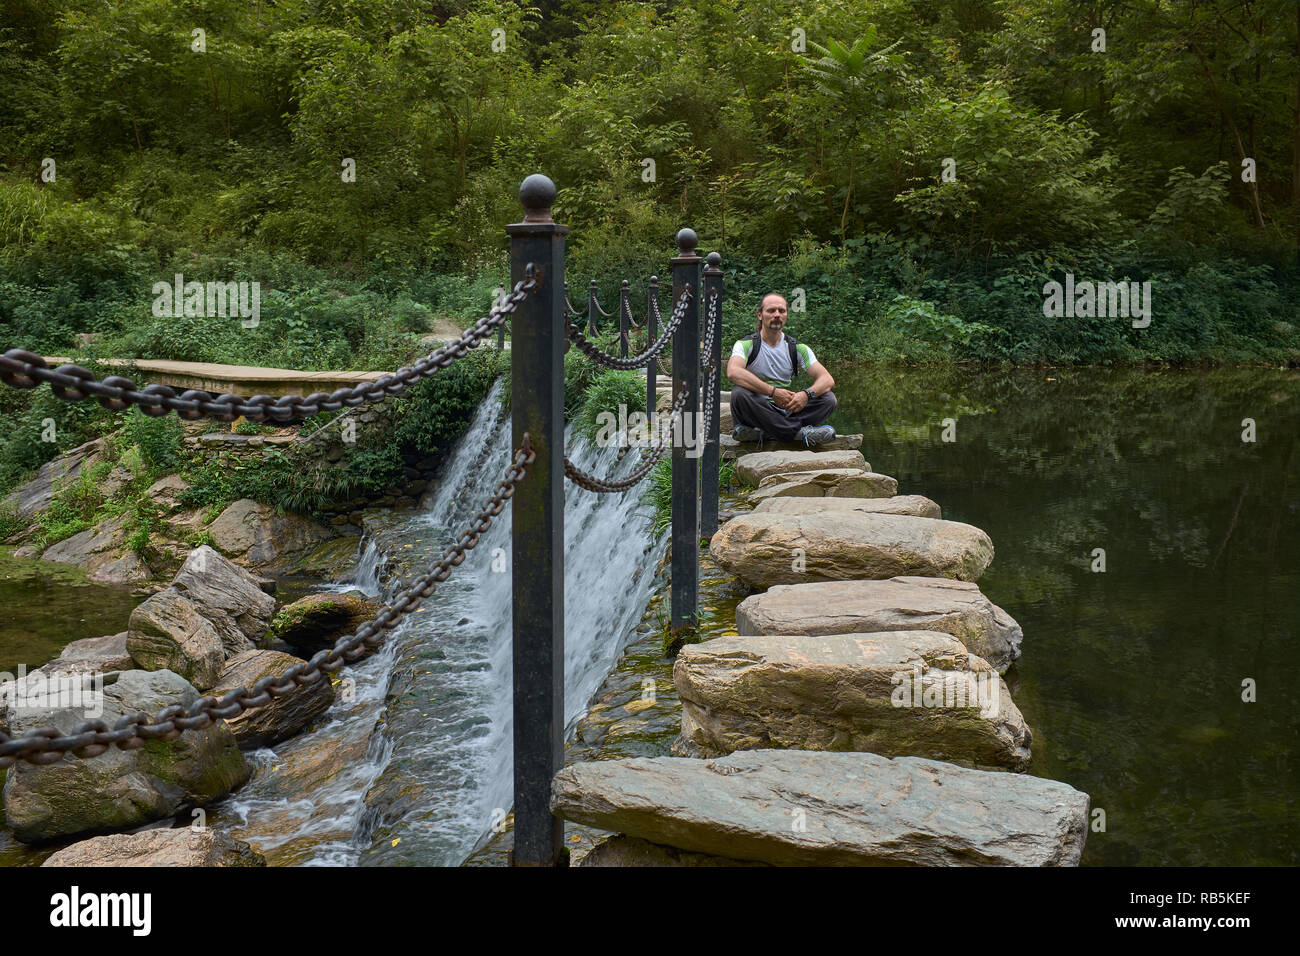 Man In Meditation At Beautiful Waterfall In Nature On Rock Brige In Wudangshan Mountains China Stock Photo Alamy